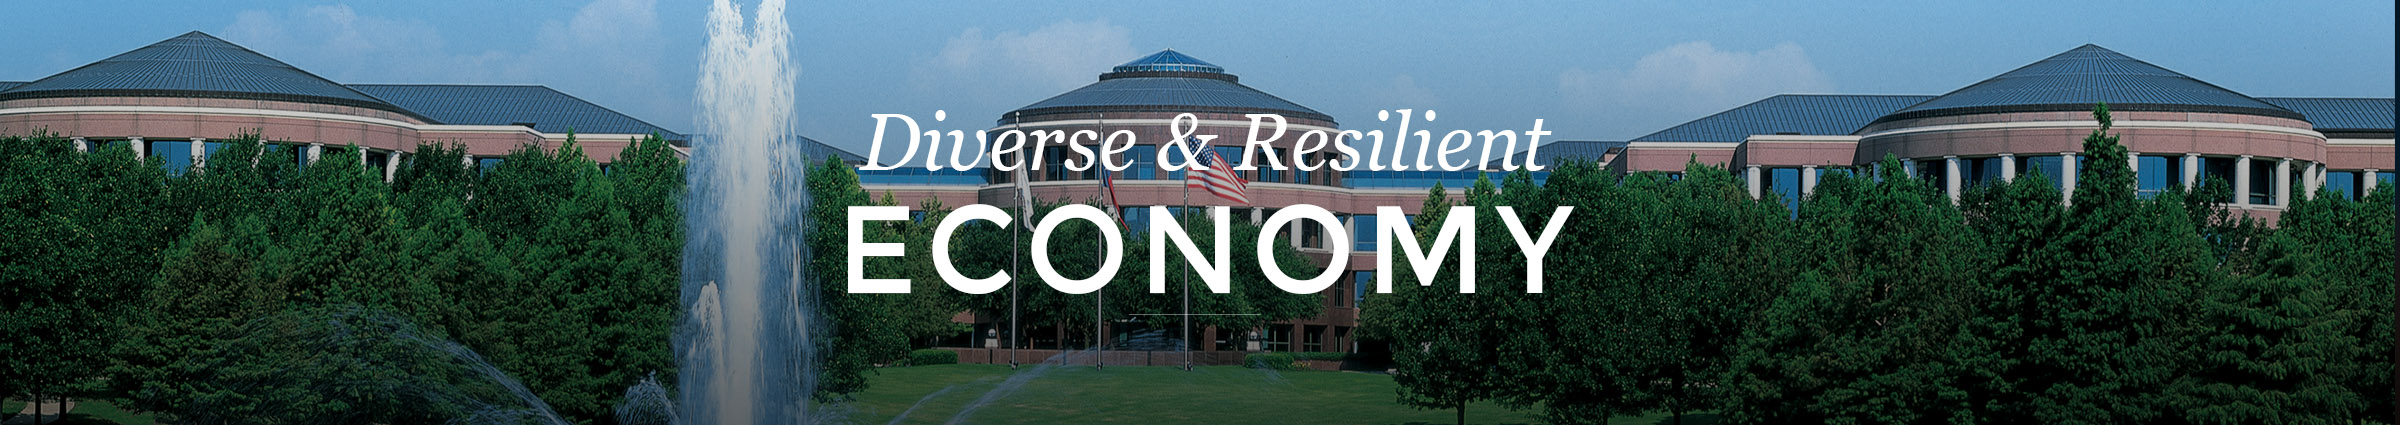 Diverse and Resilient Economy